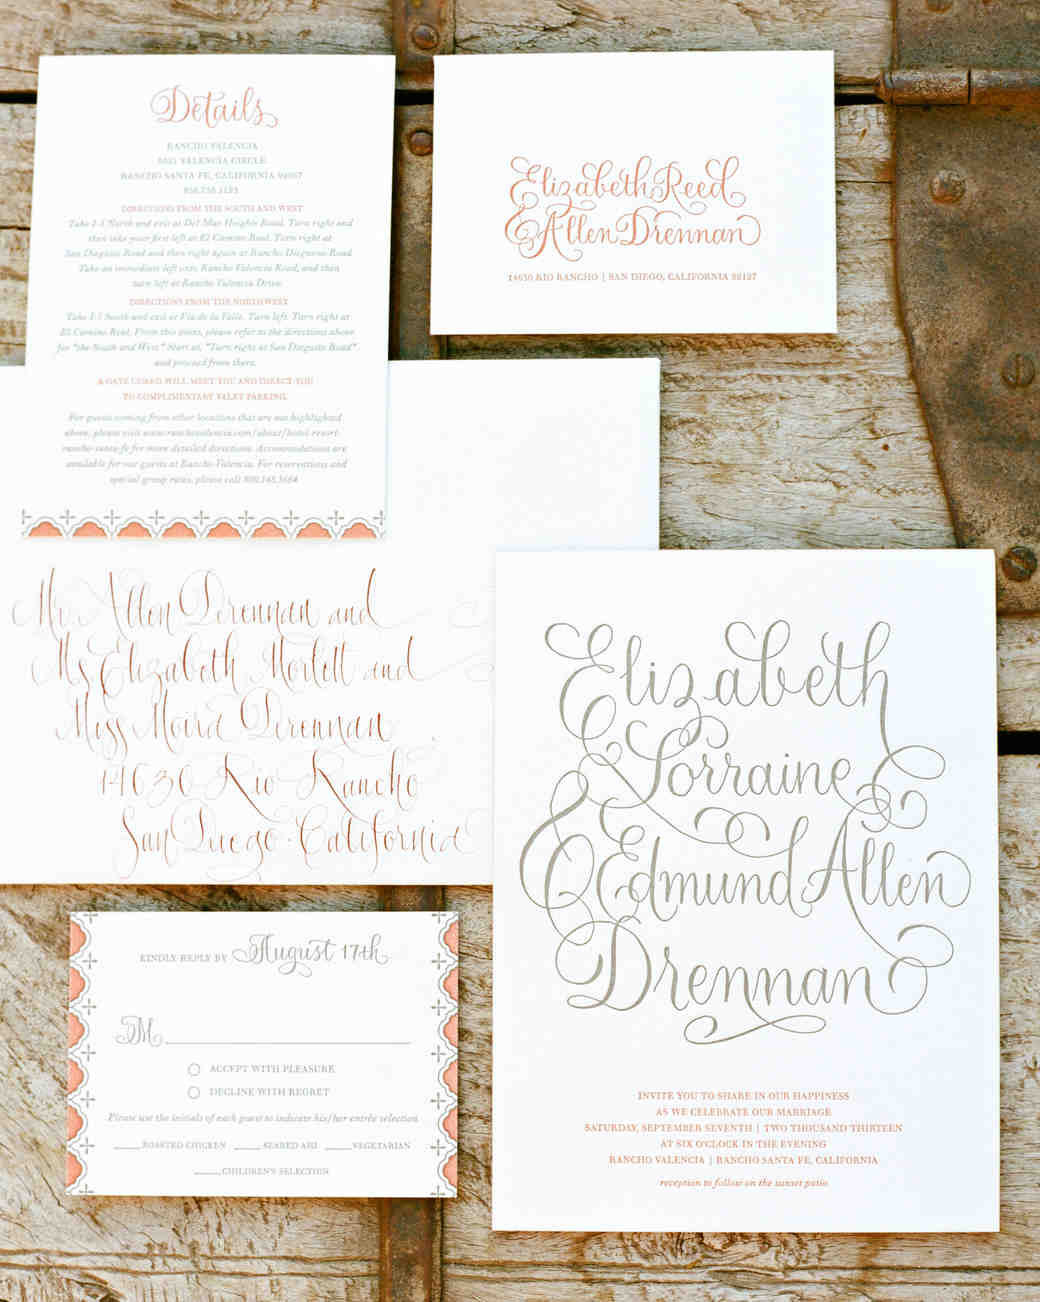 10 Things You Should Know Before Addressing Embling And Mailing Your Wedding Invitations Martha Weddings